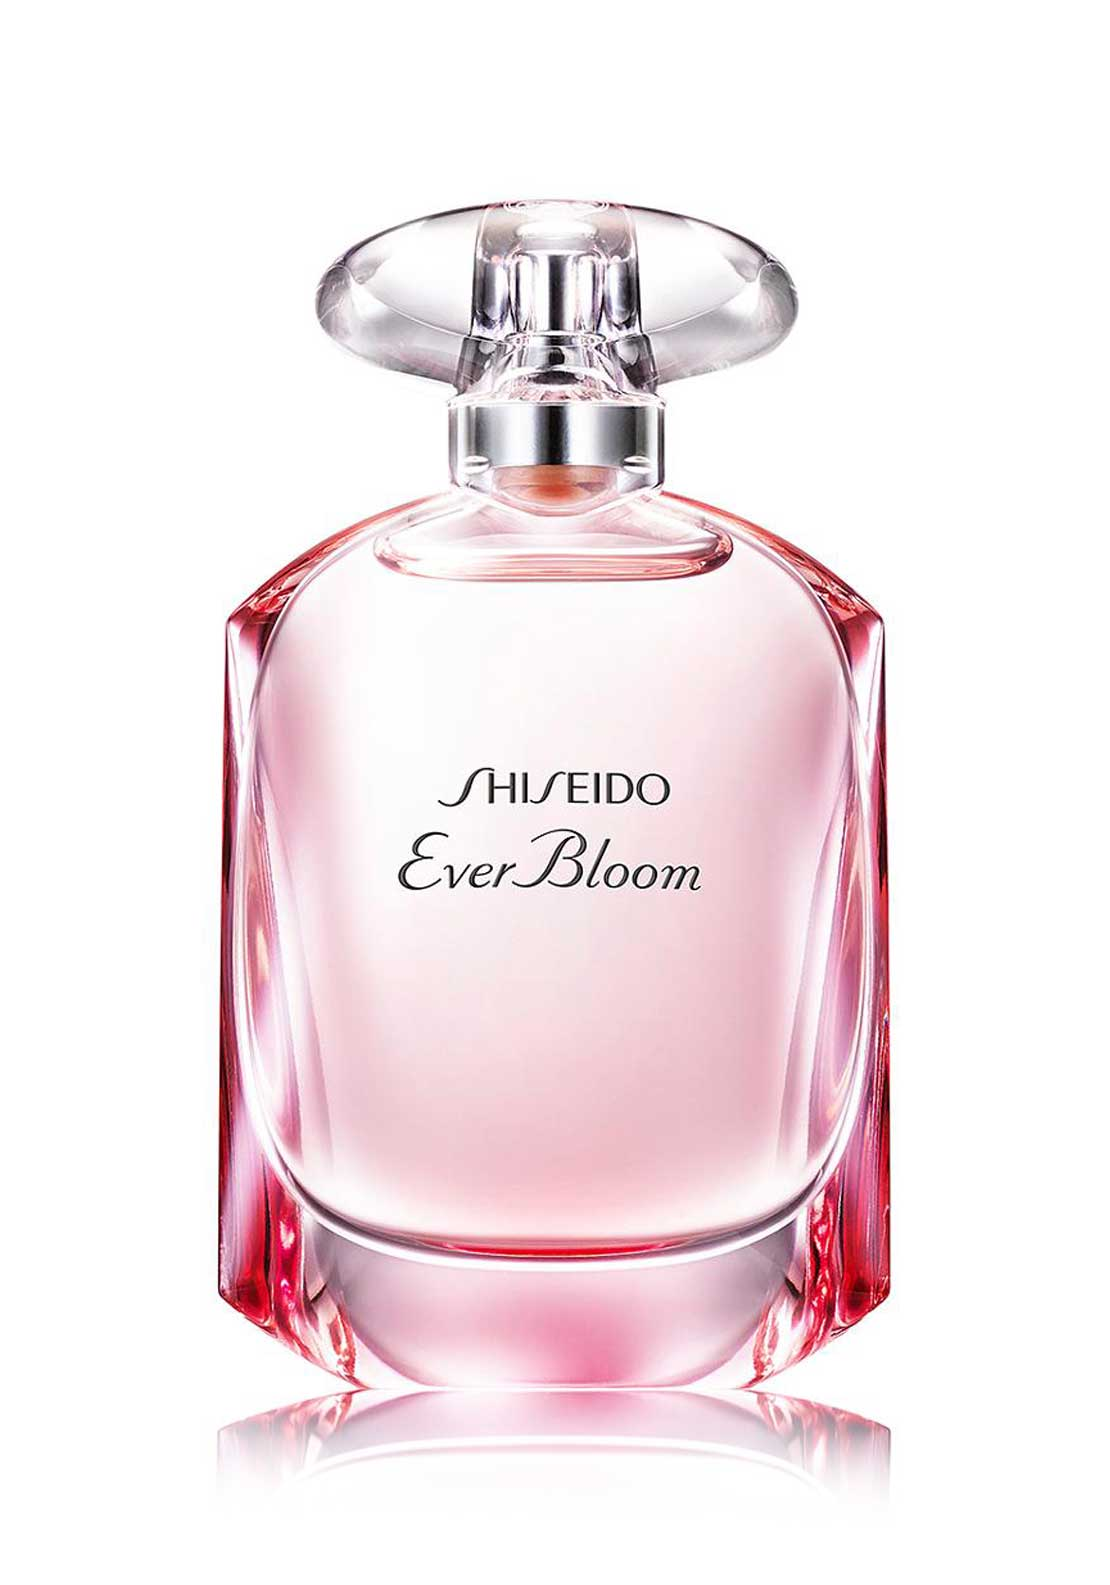 Shiseido Ever Bloom Eau de Parfum, 90ml